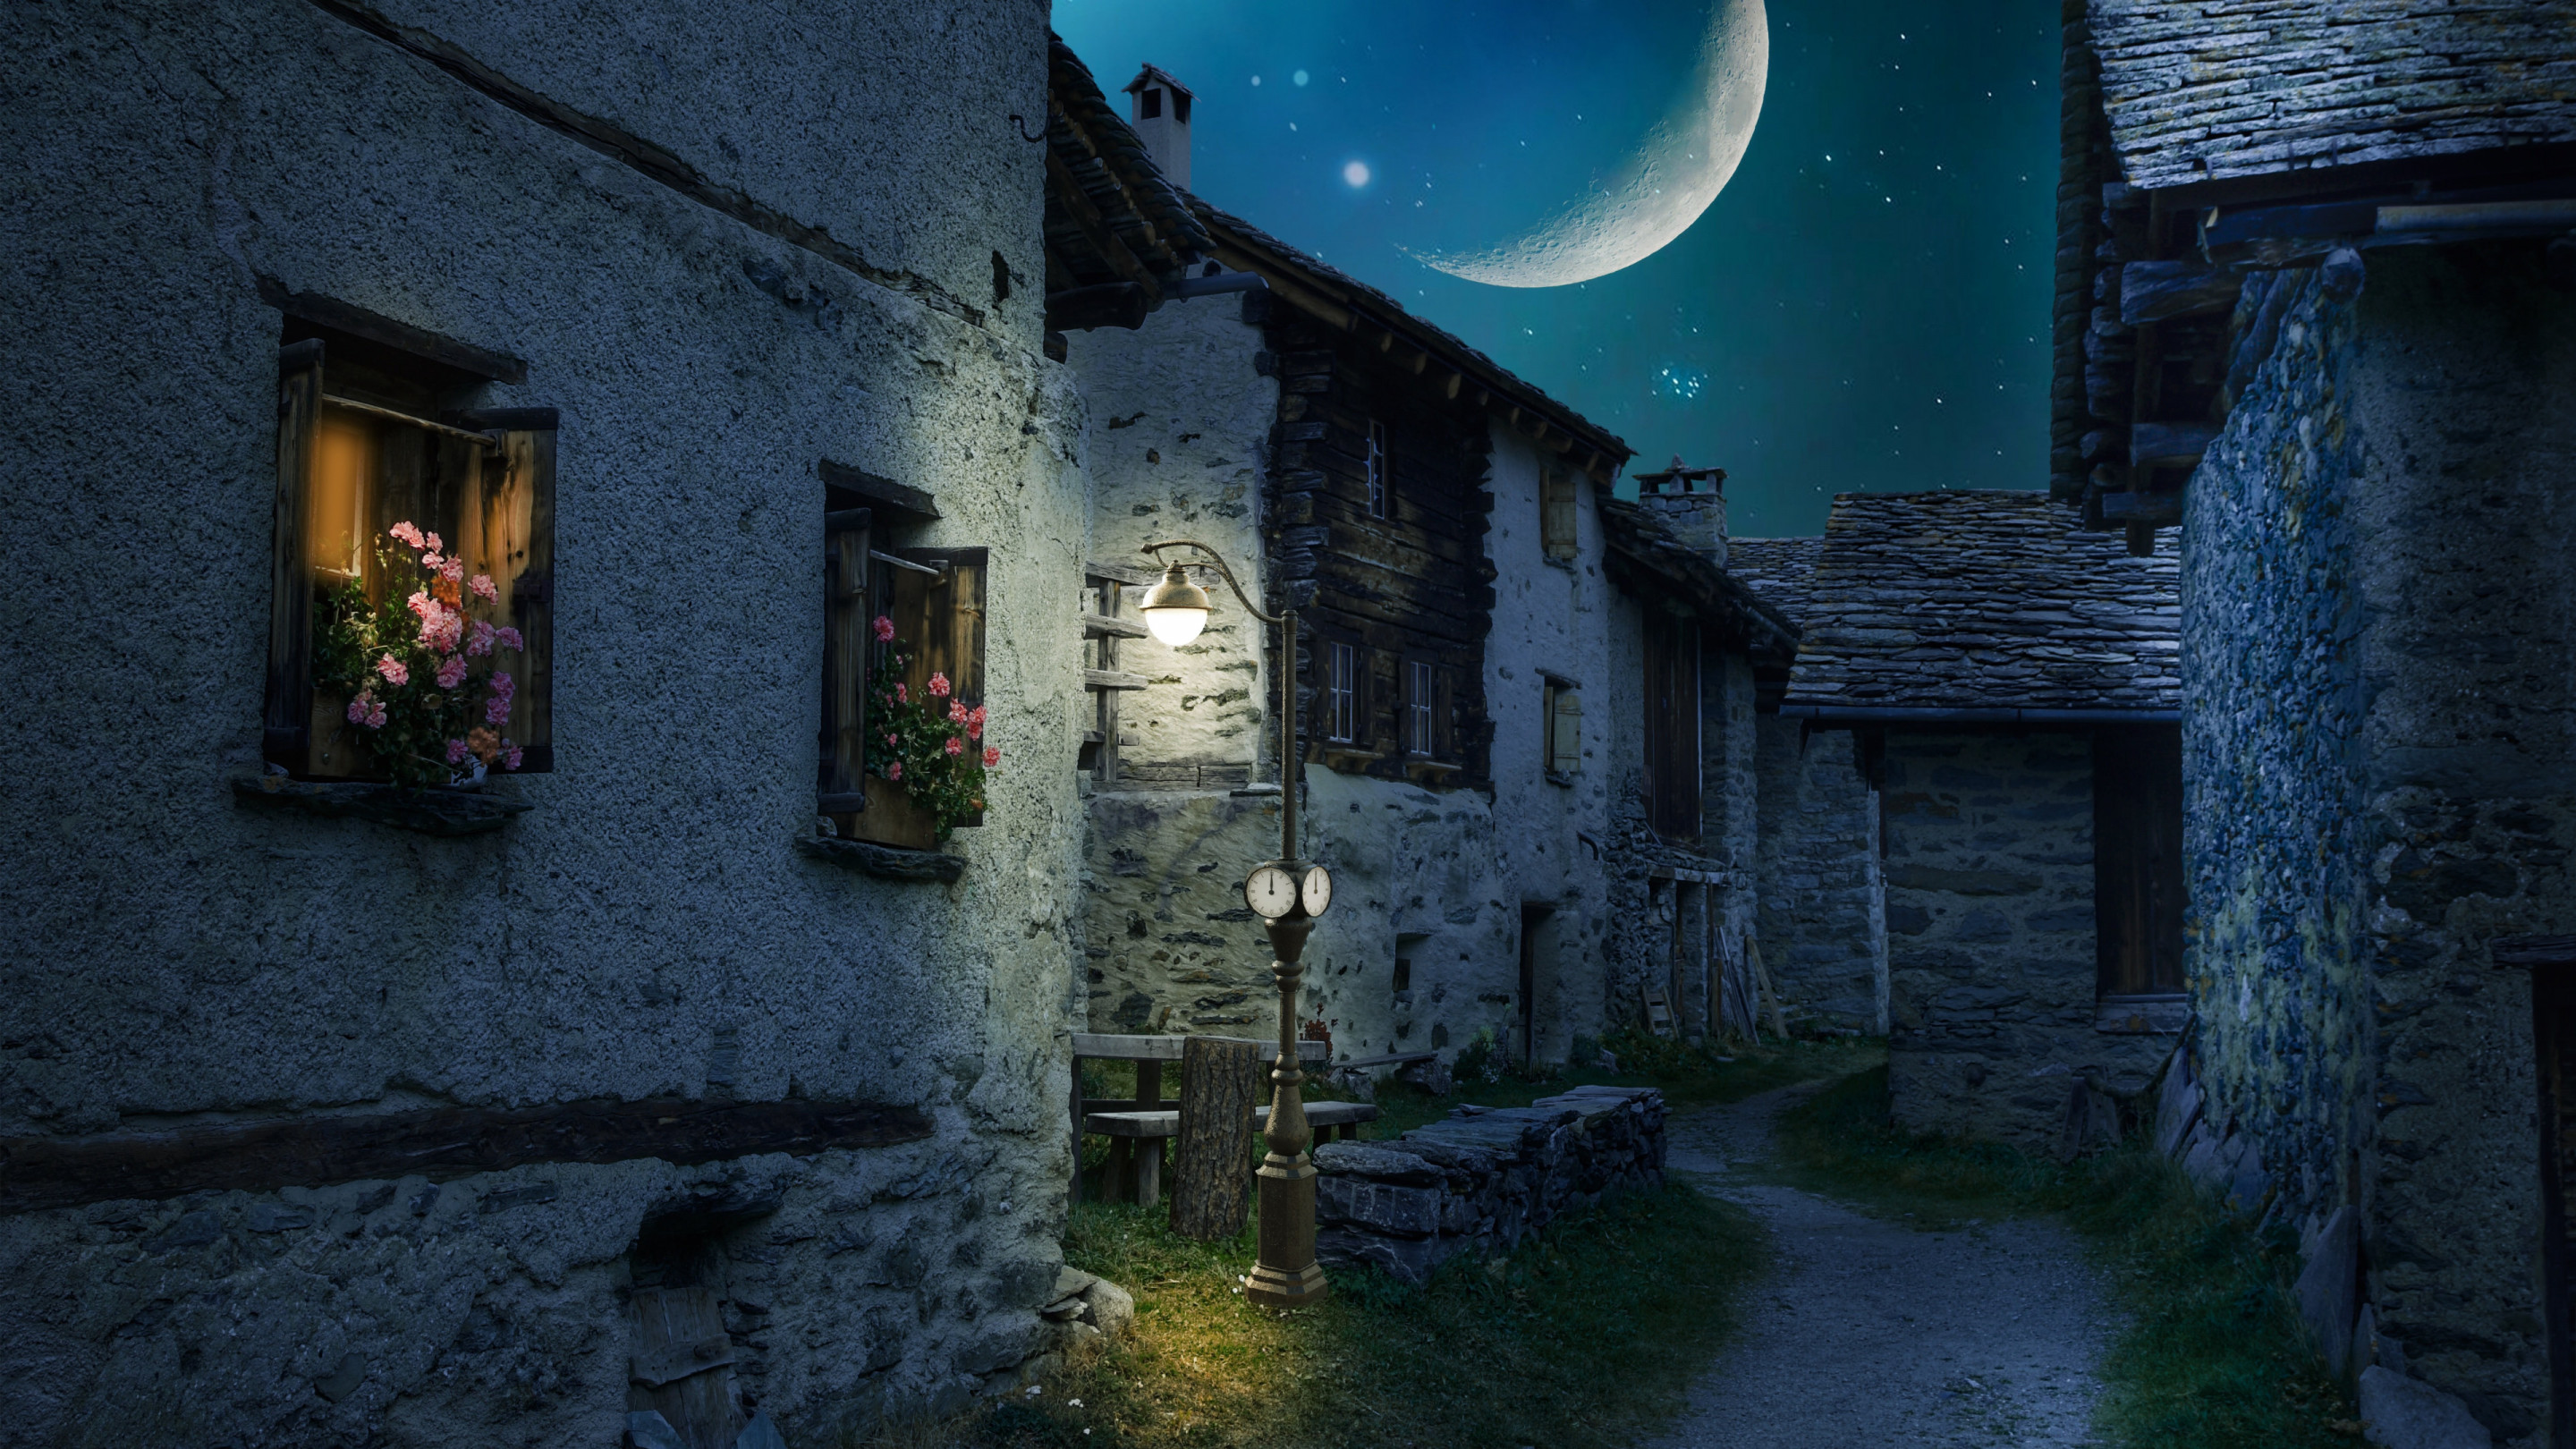 Walk through the medieval city under the moonlight wallpaper 2880x1620